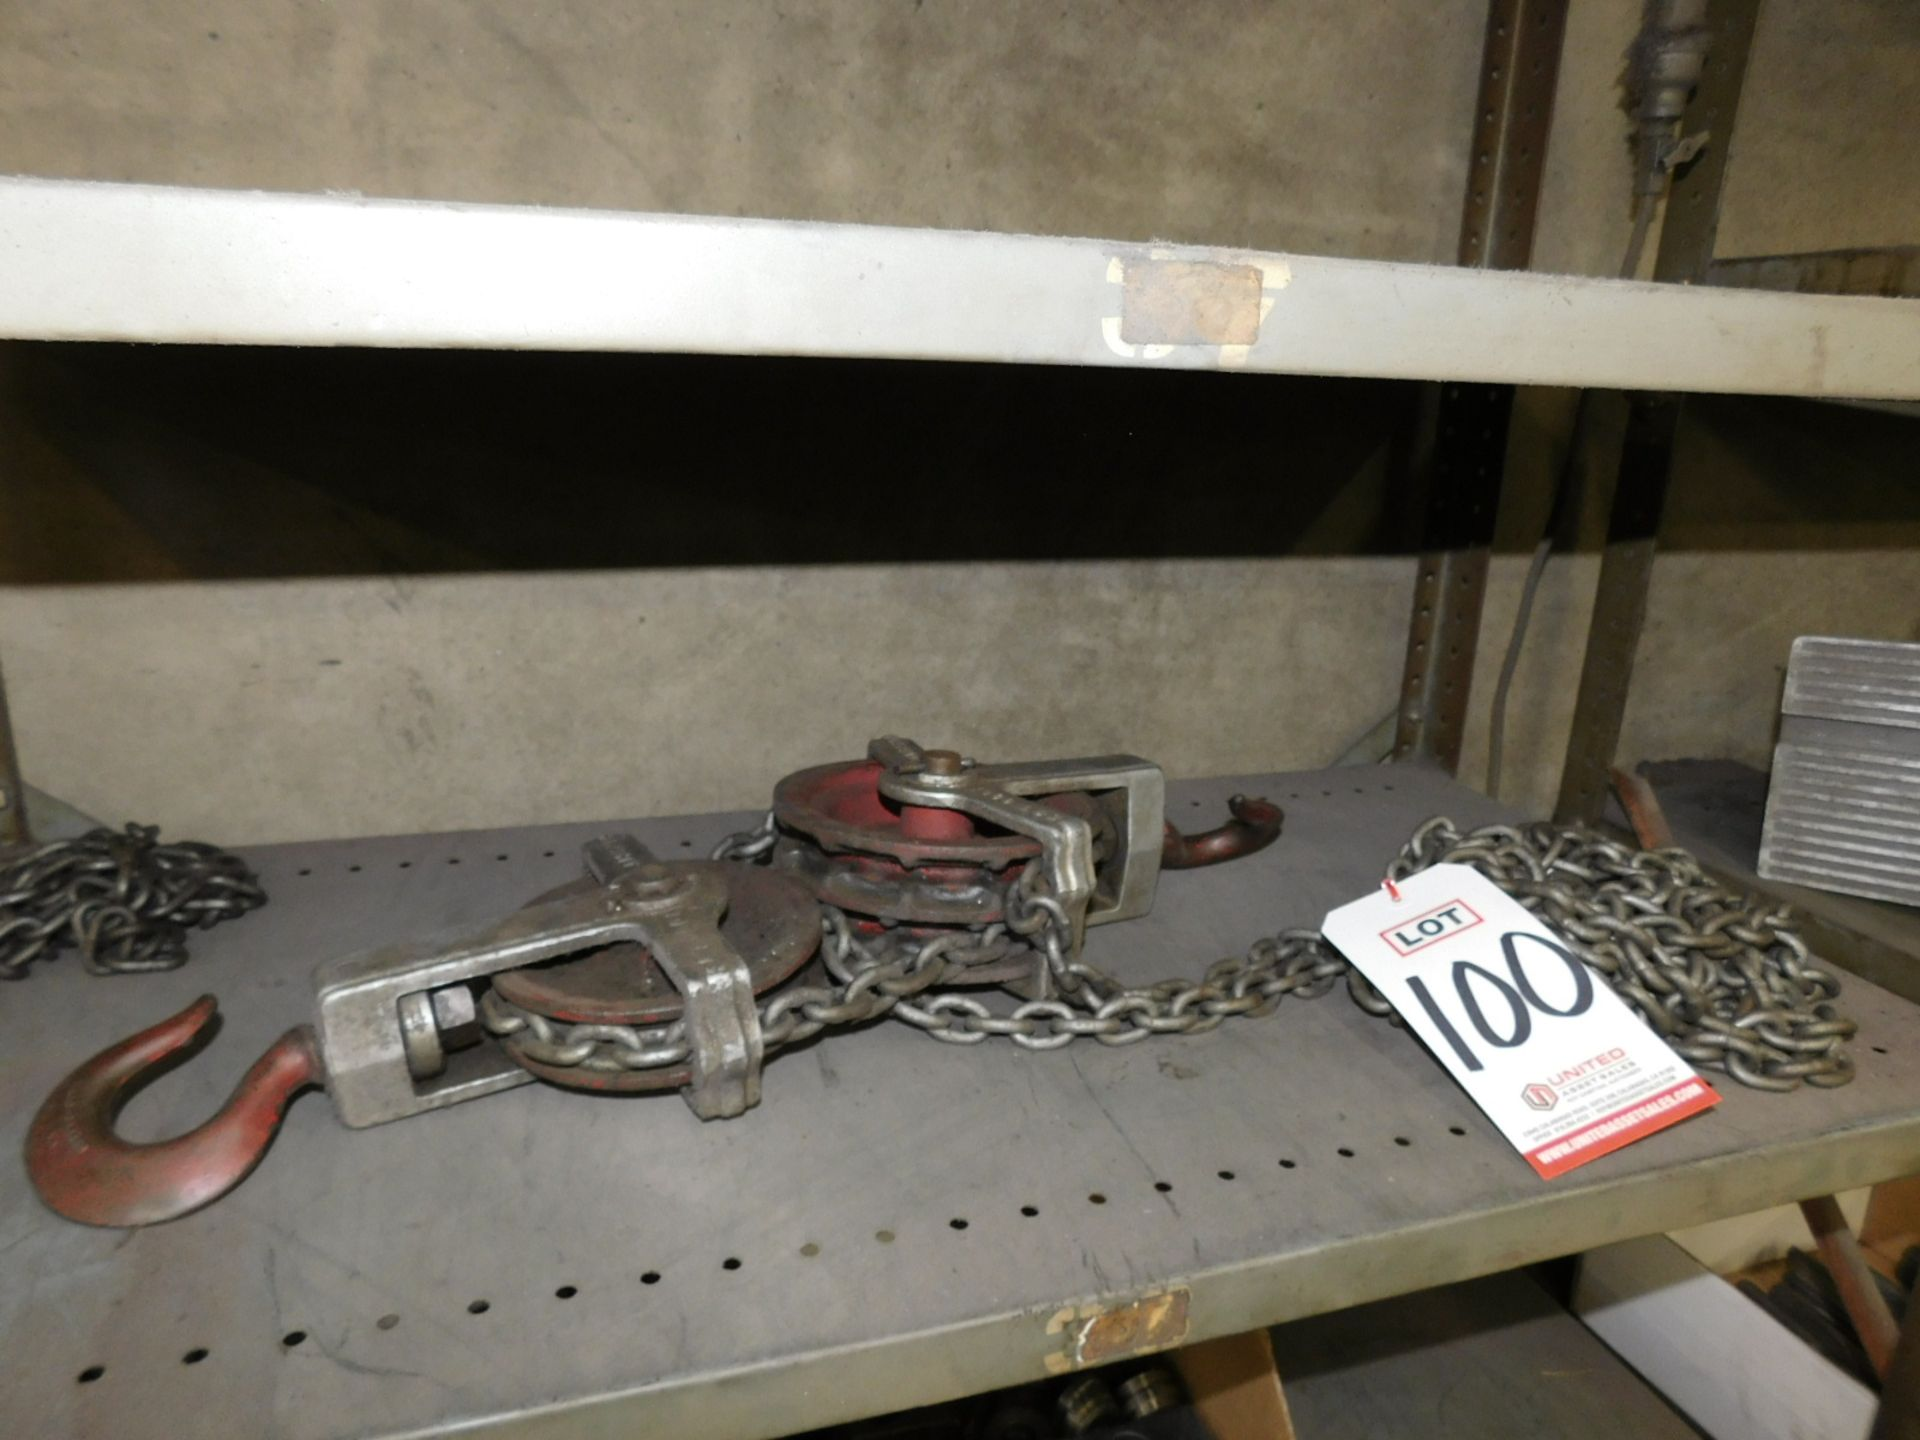 MANUAL CHAIN HOIST, 1,000 LB CAPACITY